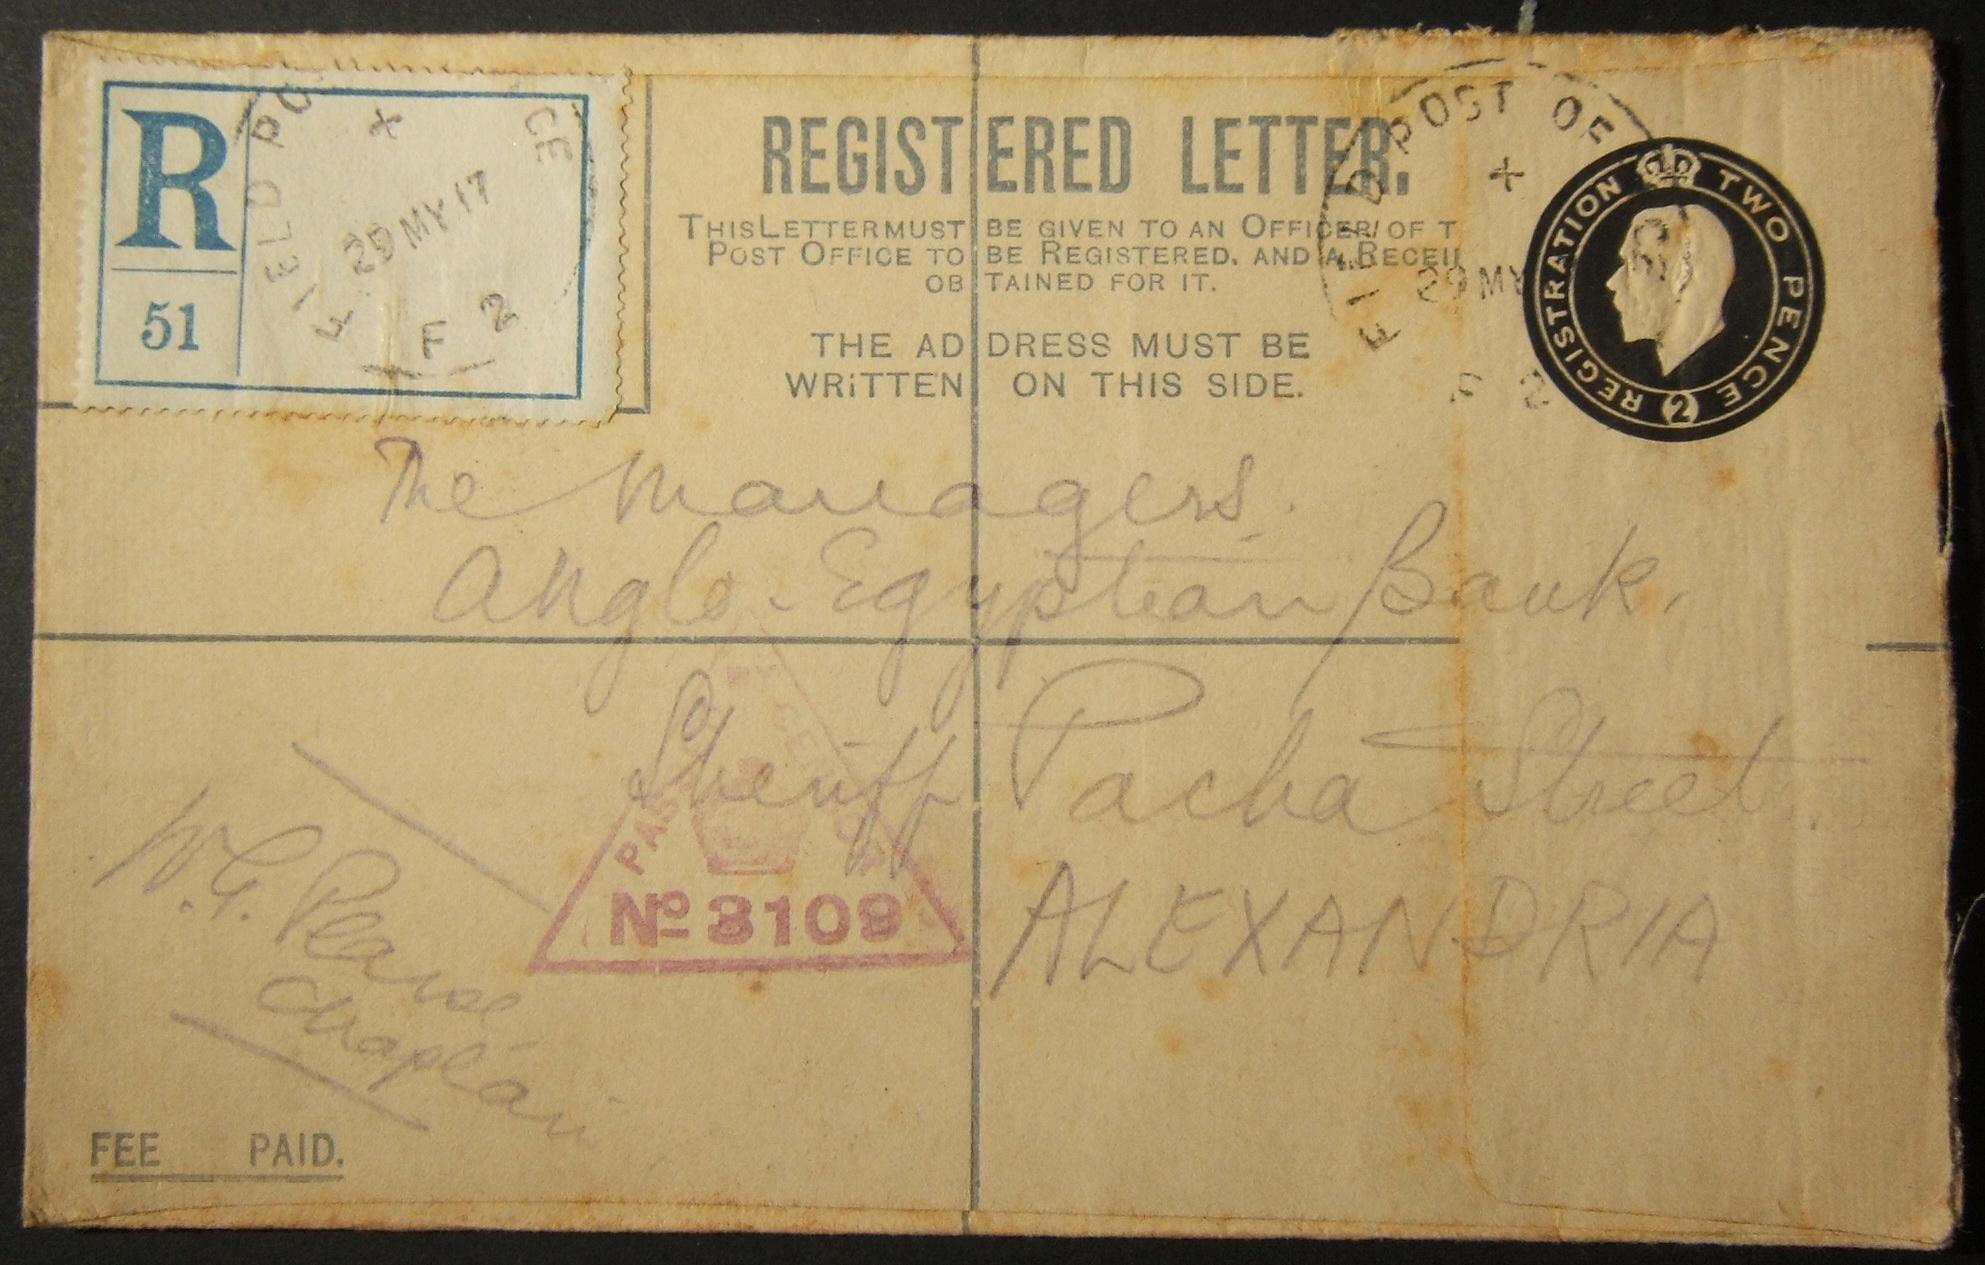 5/1917 WWI British military 2d registered envelope from FPO F2 via Egyptian post